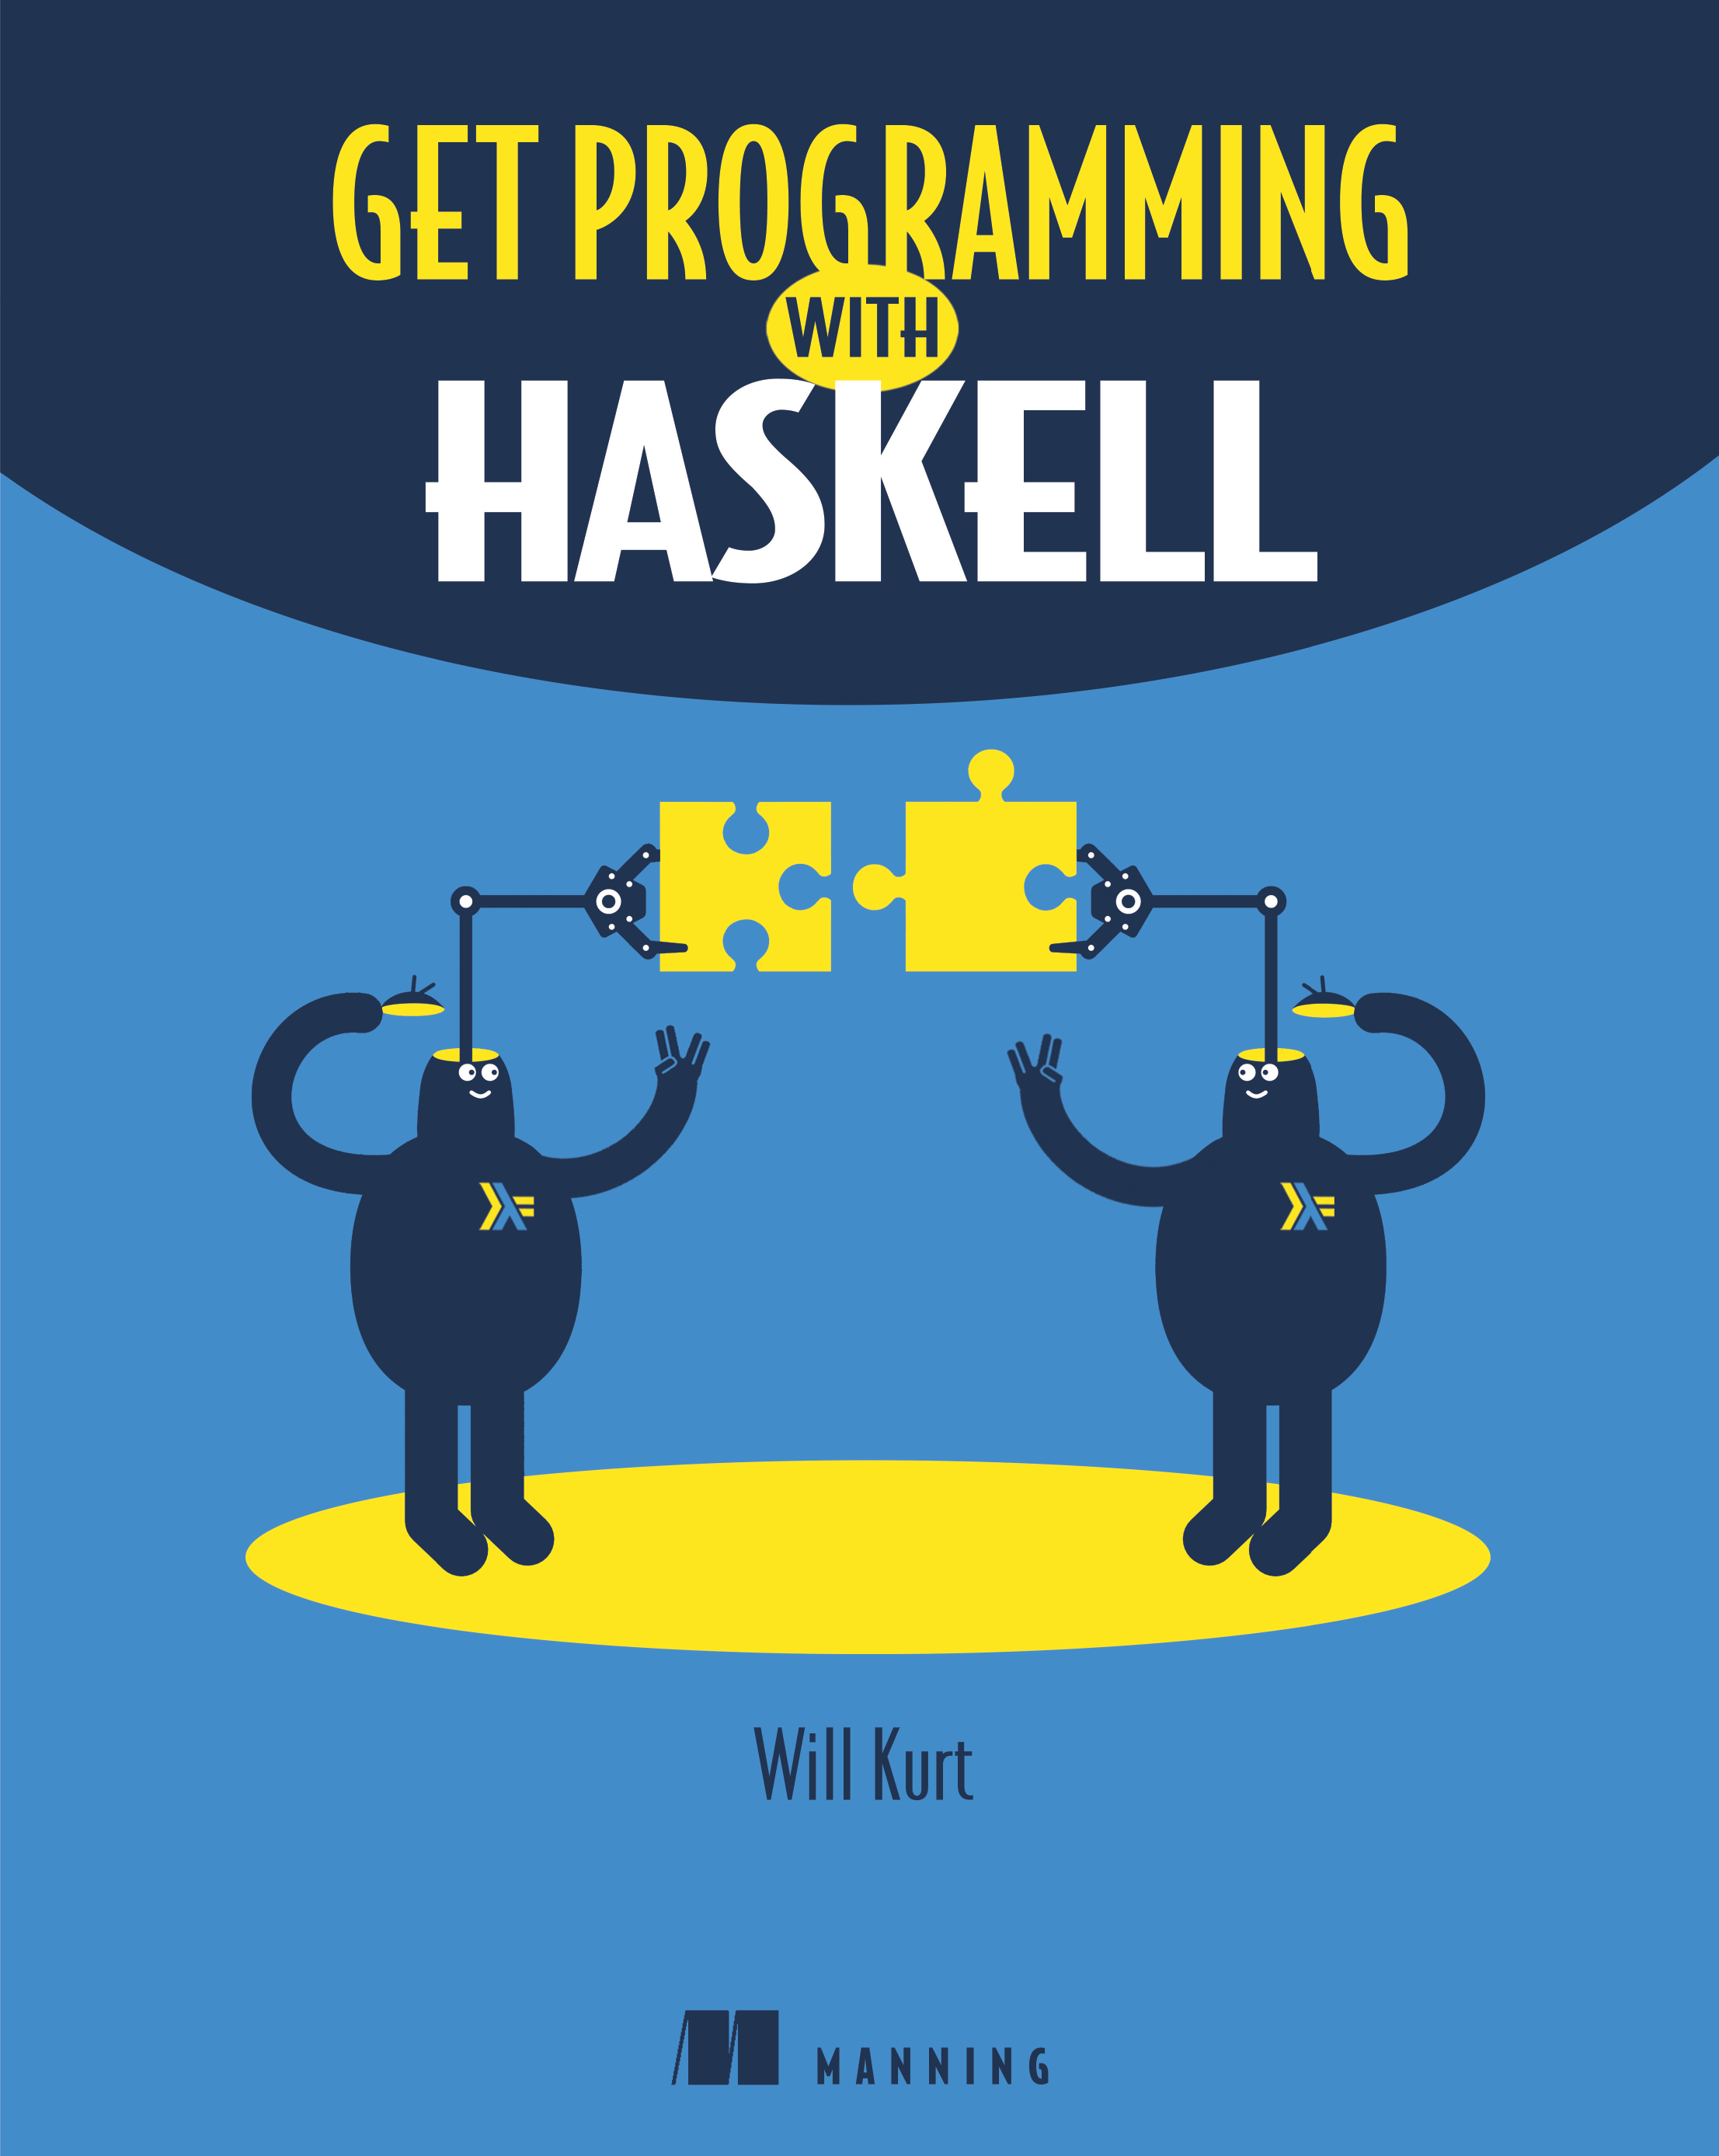 how to get length of list haskell